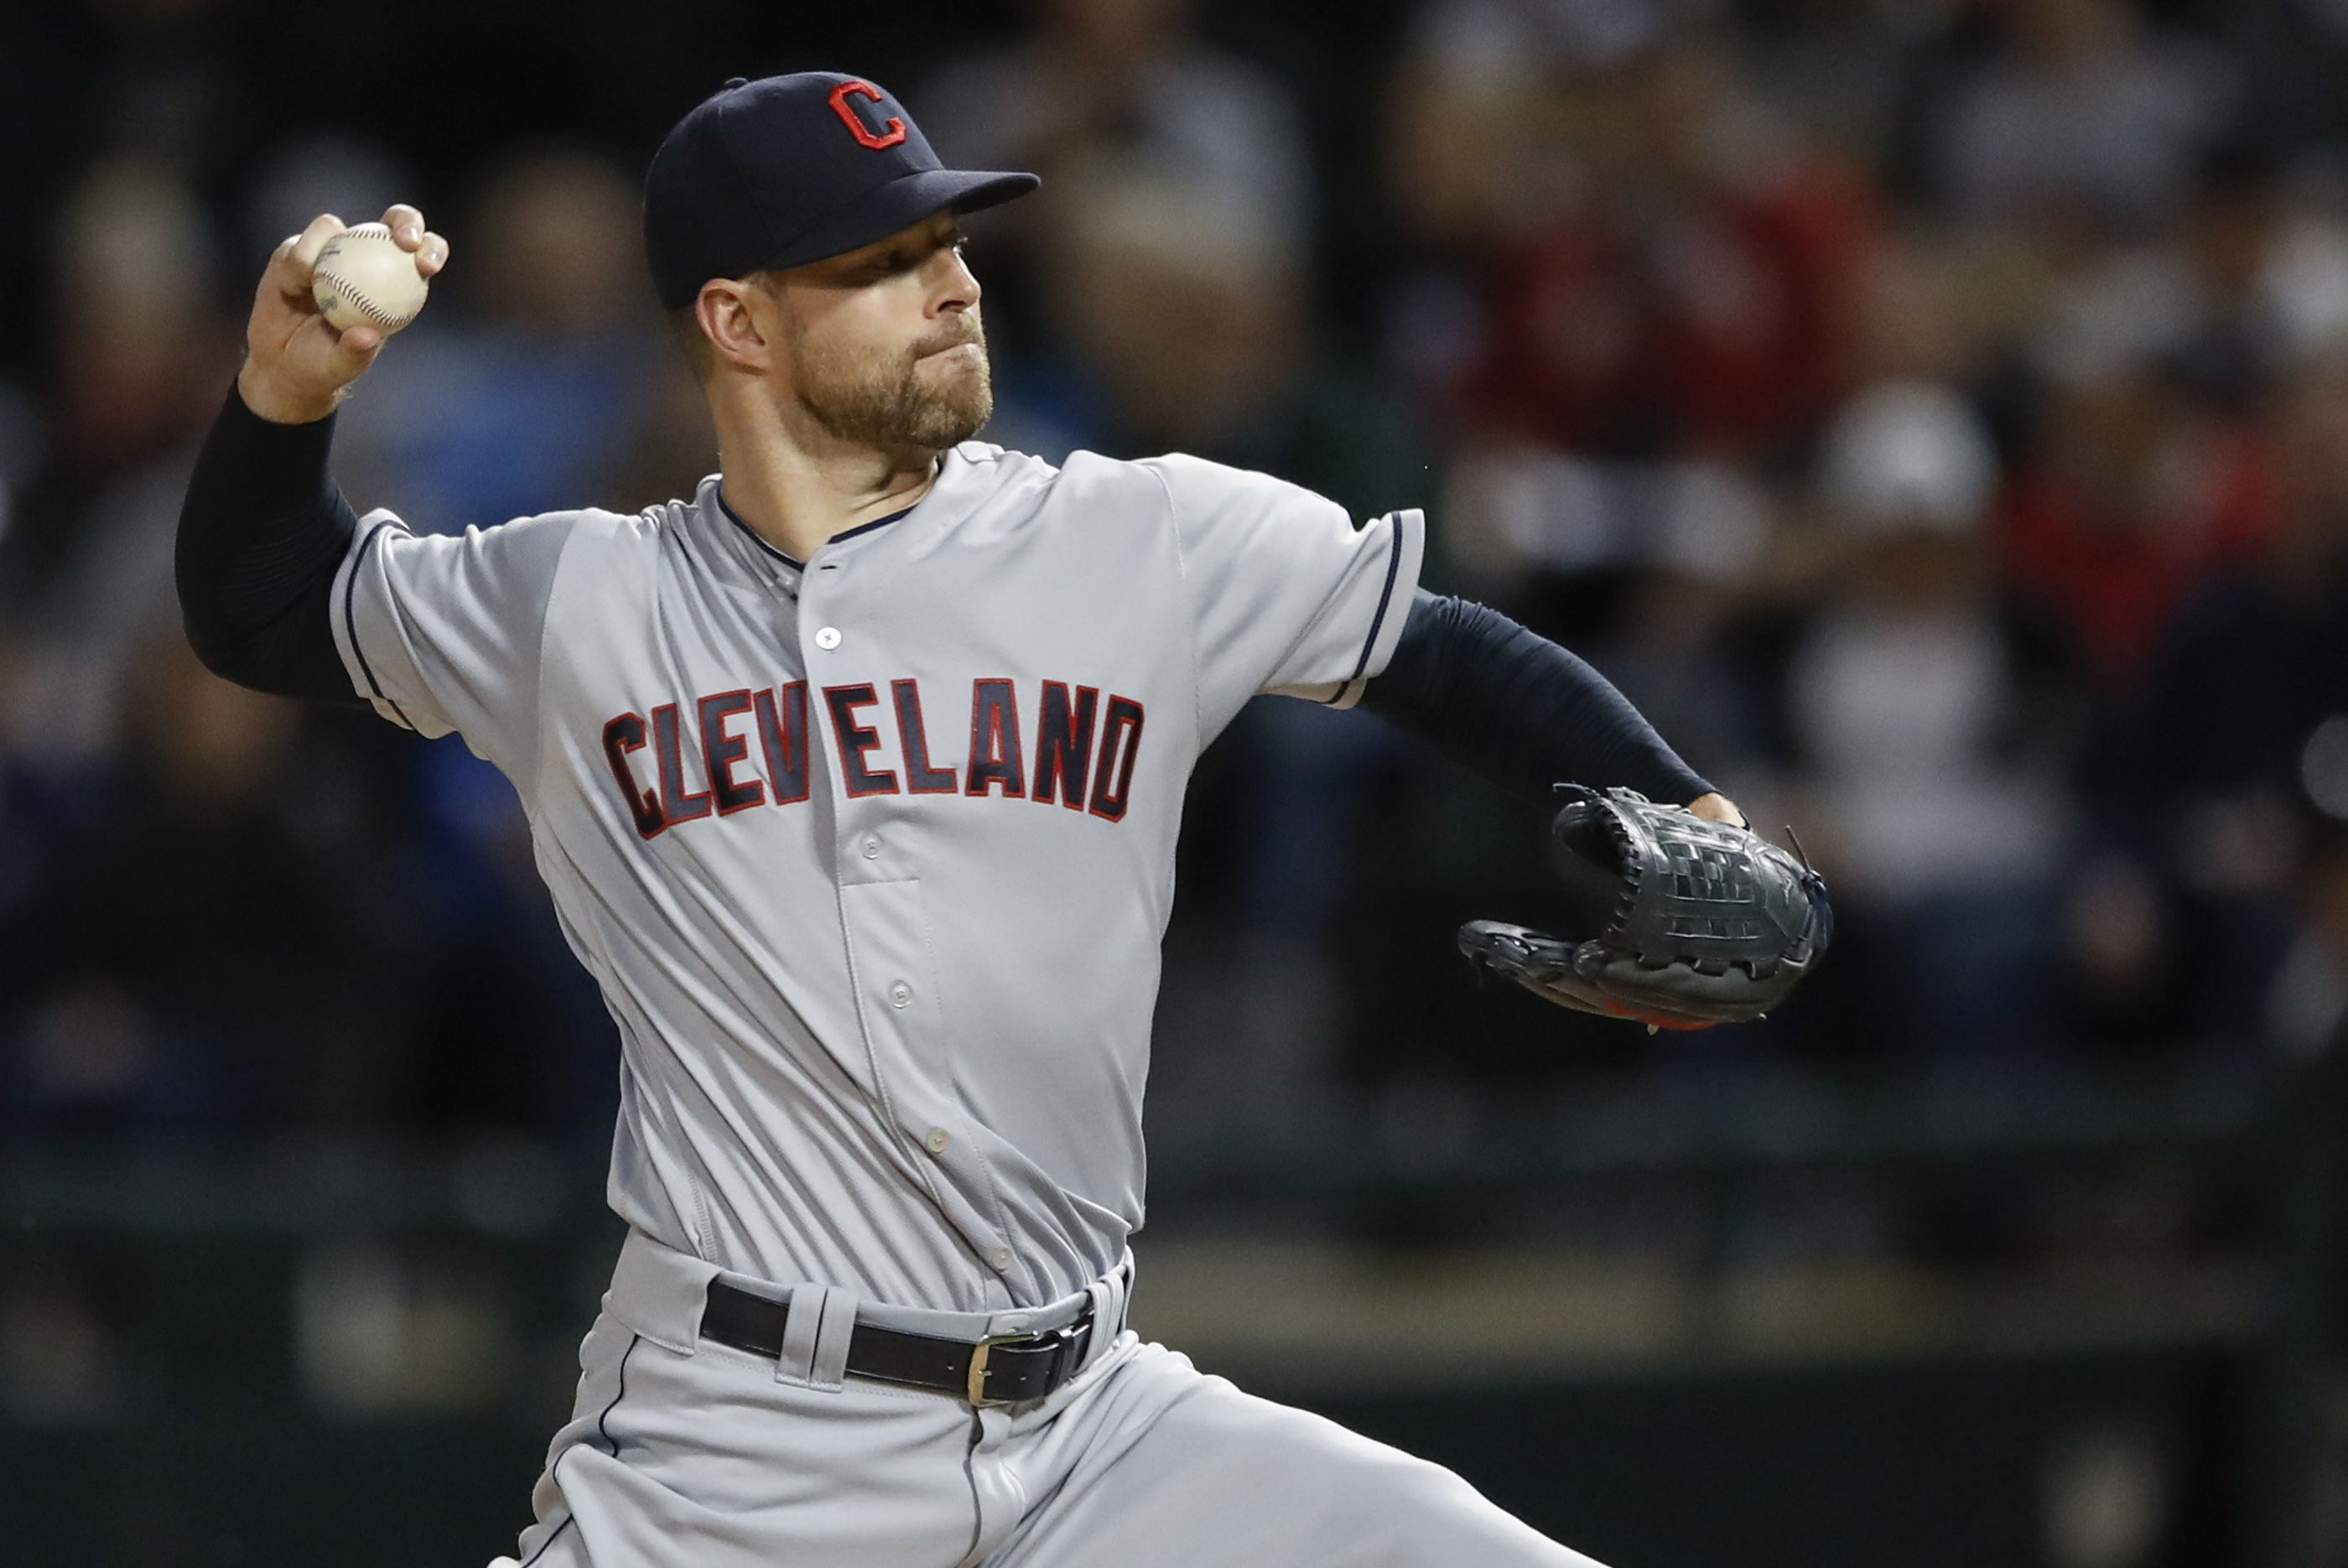 Sep 7, 2017; Chicago, IL, USA; Cleveland Indians starting pitcher Corey Kluber (28) delivers against the Chicago White Sox during the first inning at Guaranteed Rate Field. Mandatory Credit: Kamil Krzaczynski-USA TODAY Sports